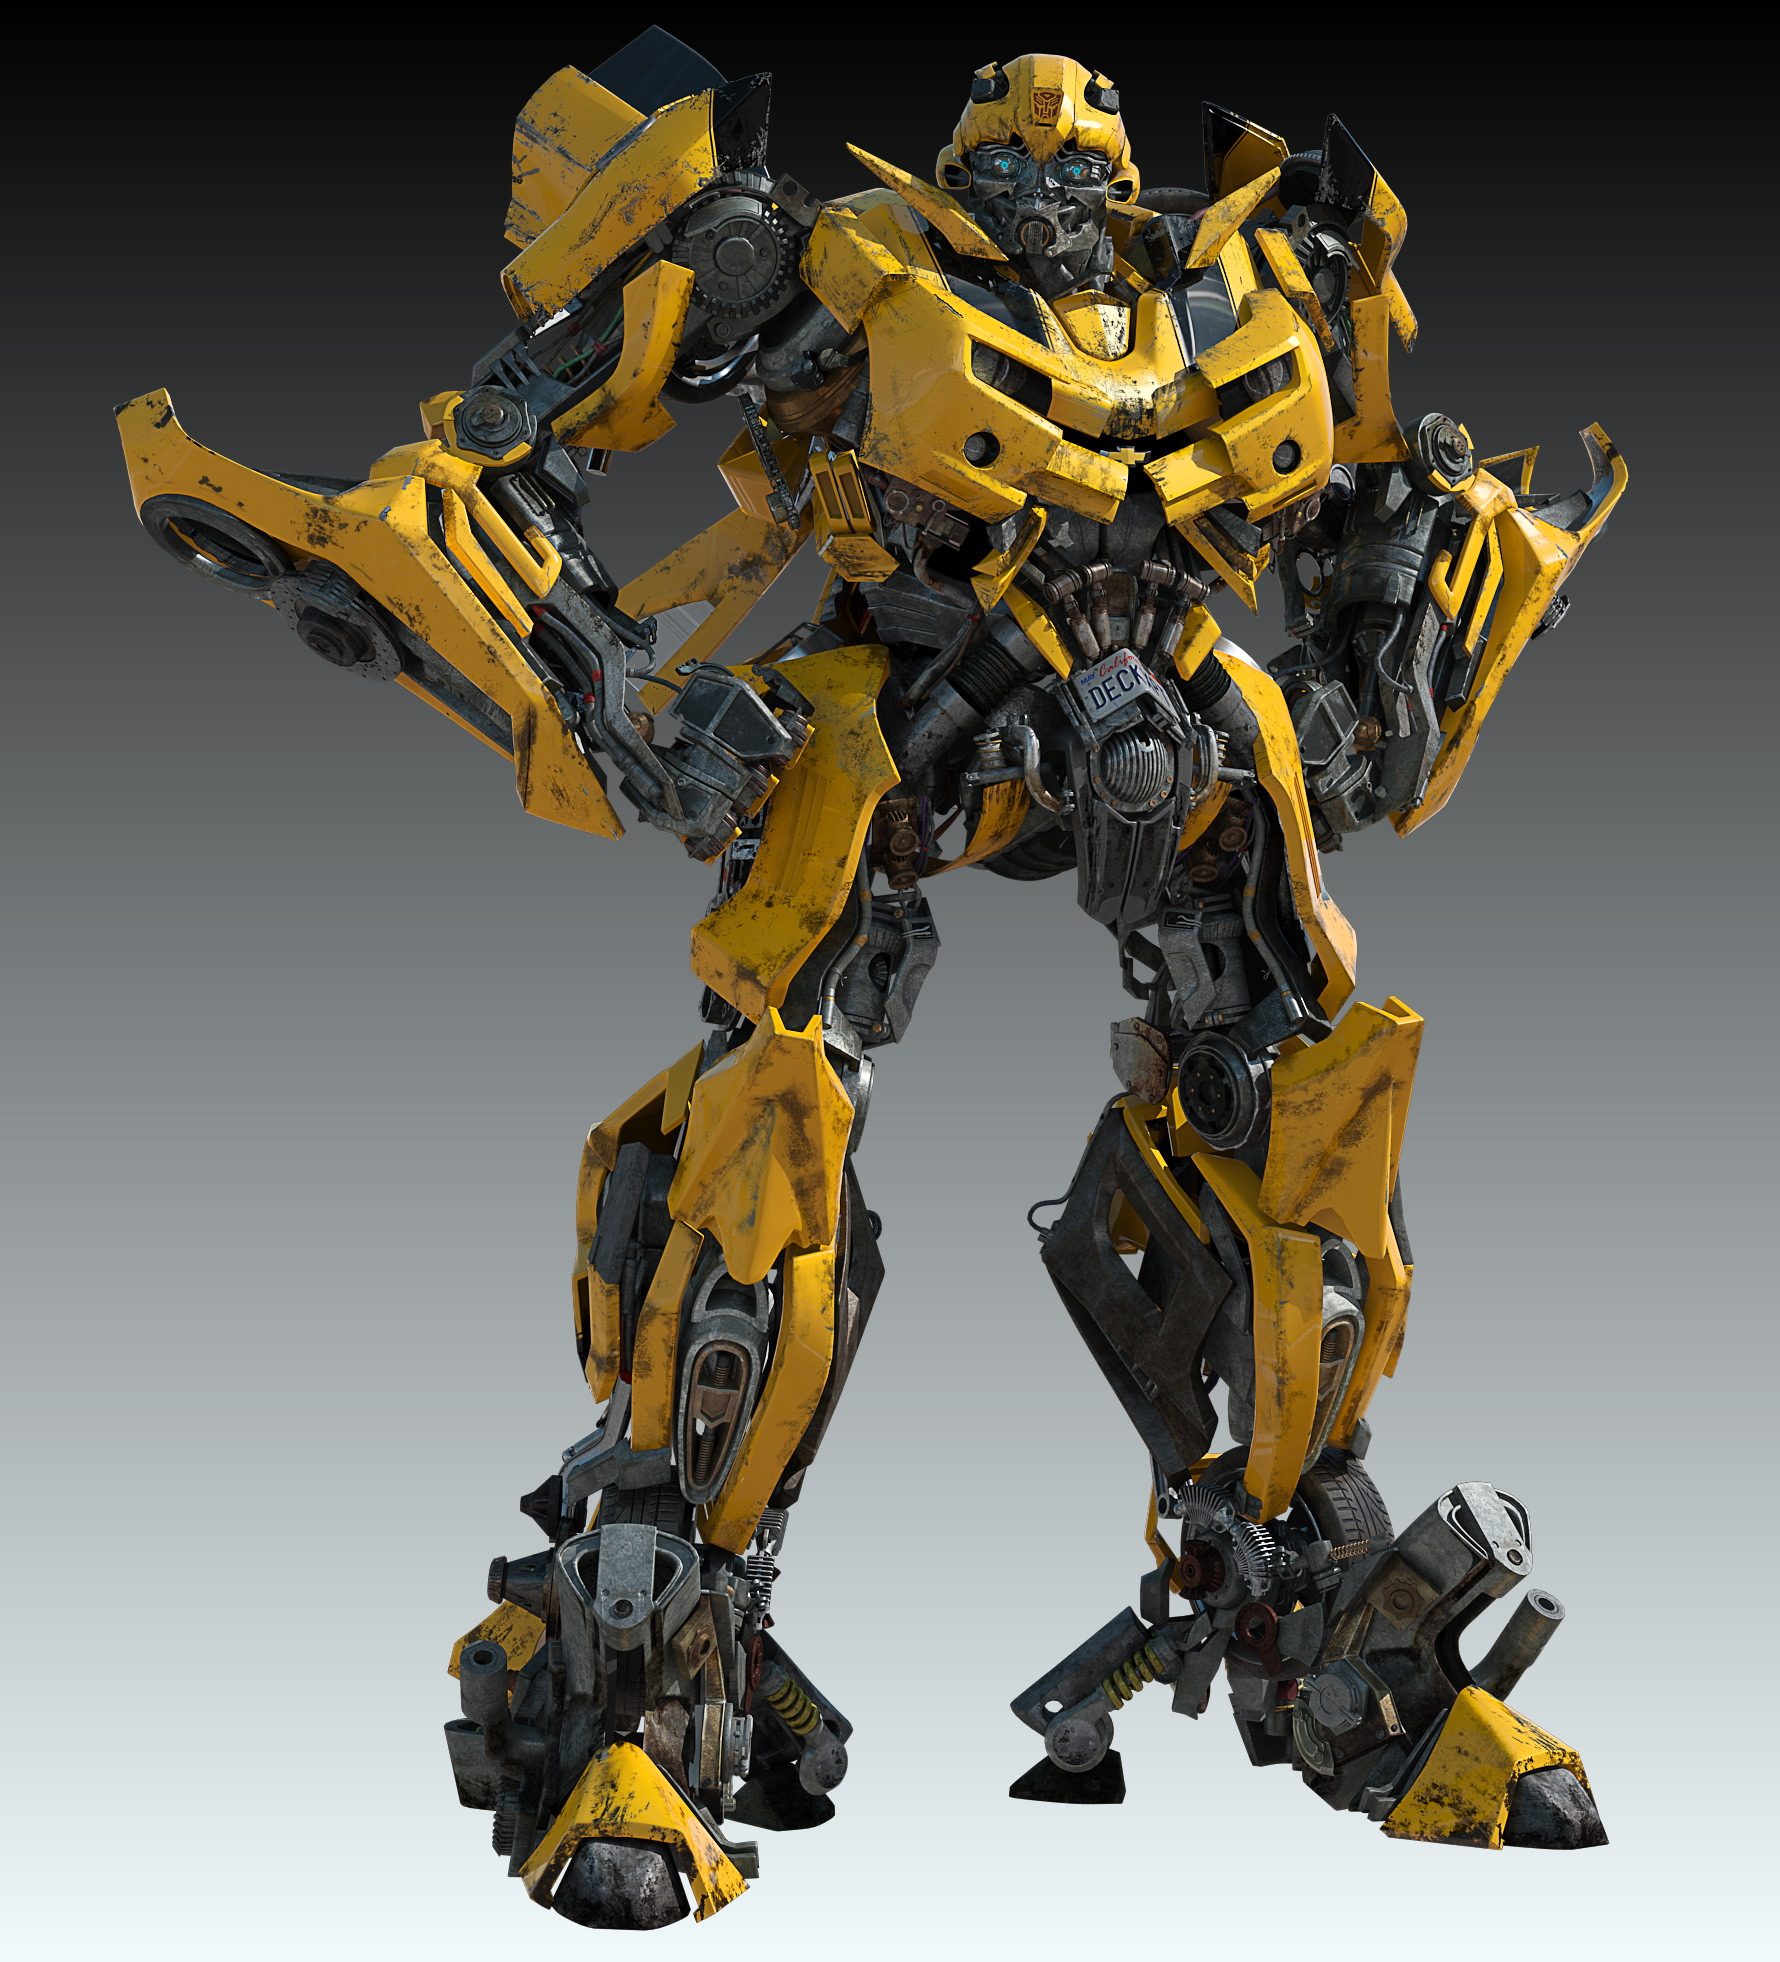 bumblebee transformers live action film series wiki fandom powered by wikia. Black Bedroom Furniture Sets. Home Design Ideas